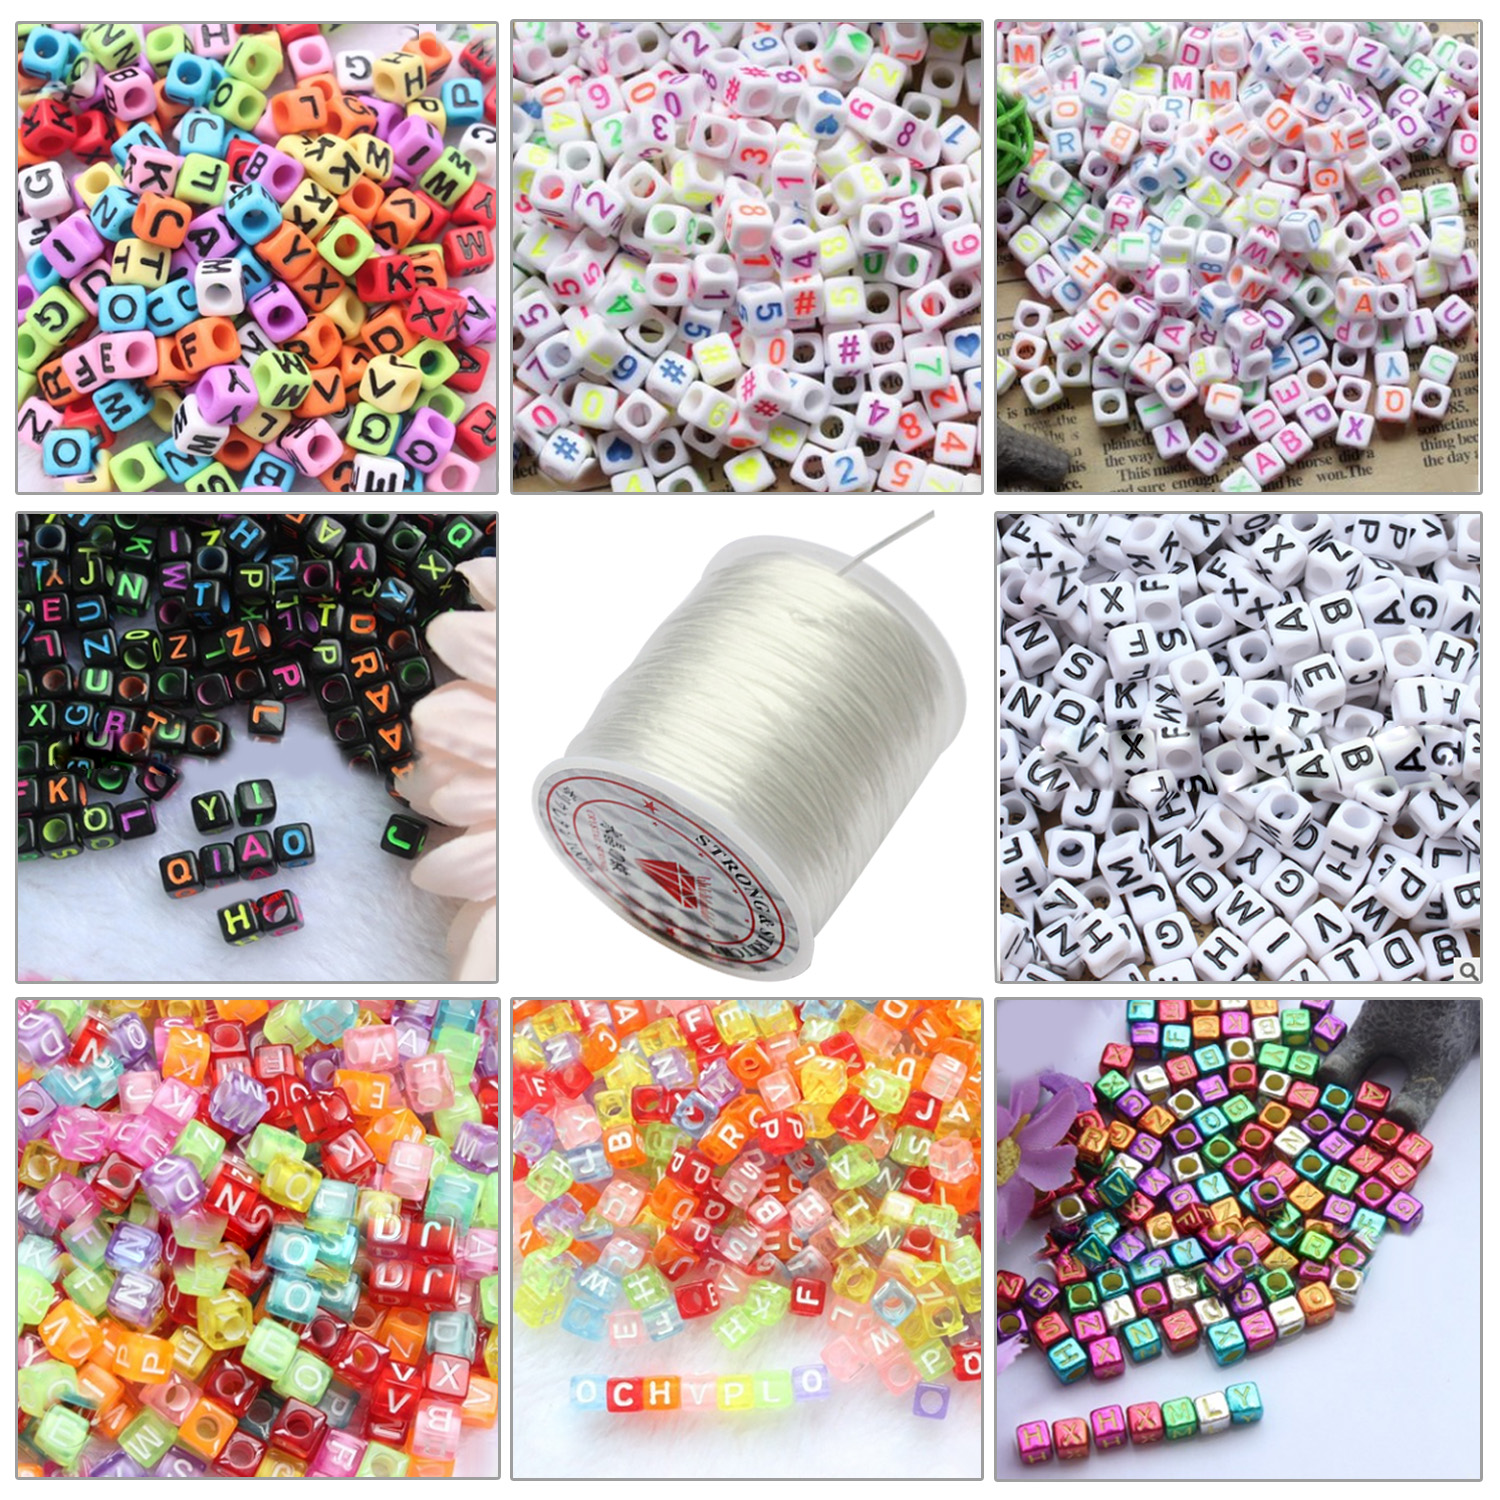 800pcs 8 Style Acrylic Letter Number Craft Beads With 1 Roll Elastic String For Jewelry Bracelets Necklace Making Kid DIY Craft